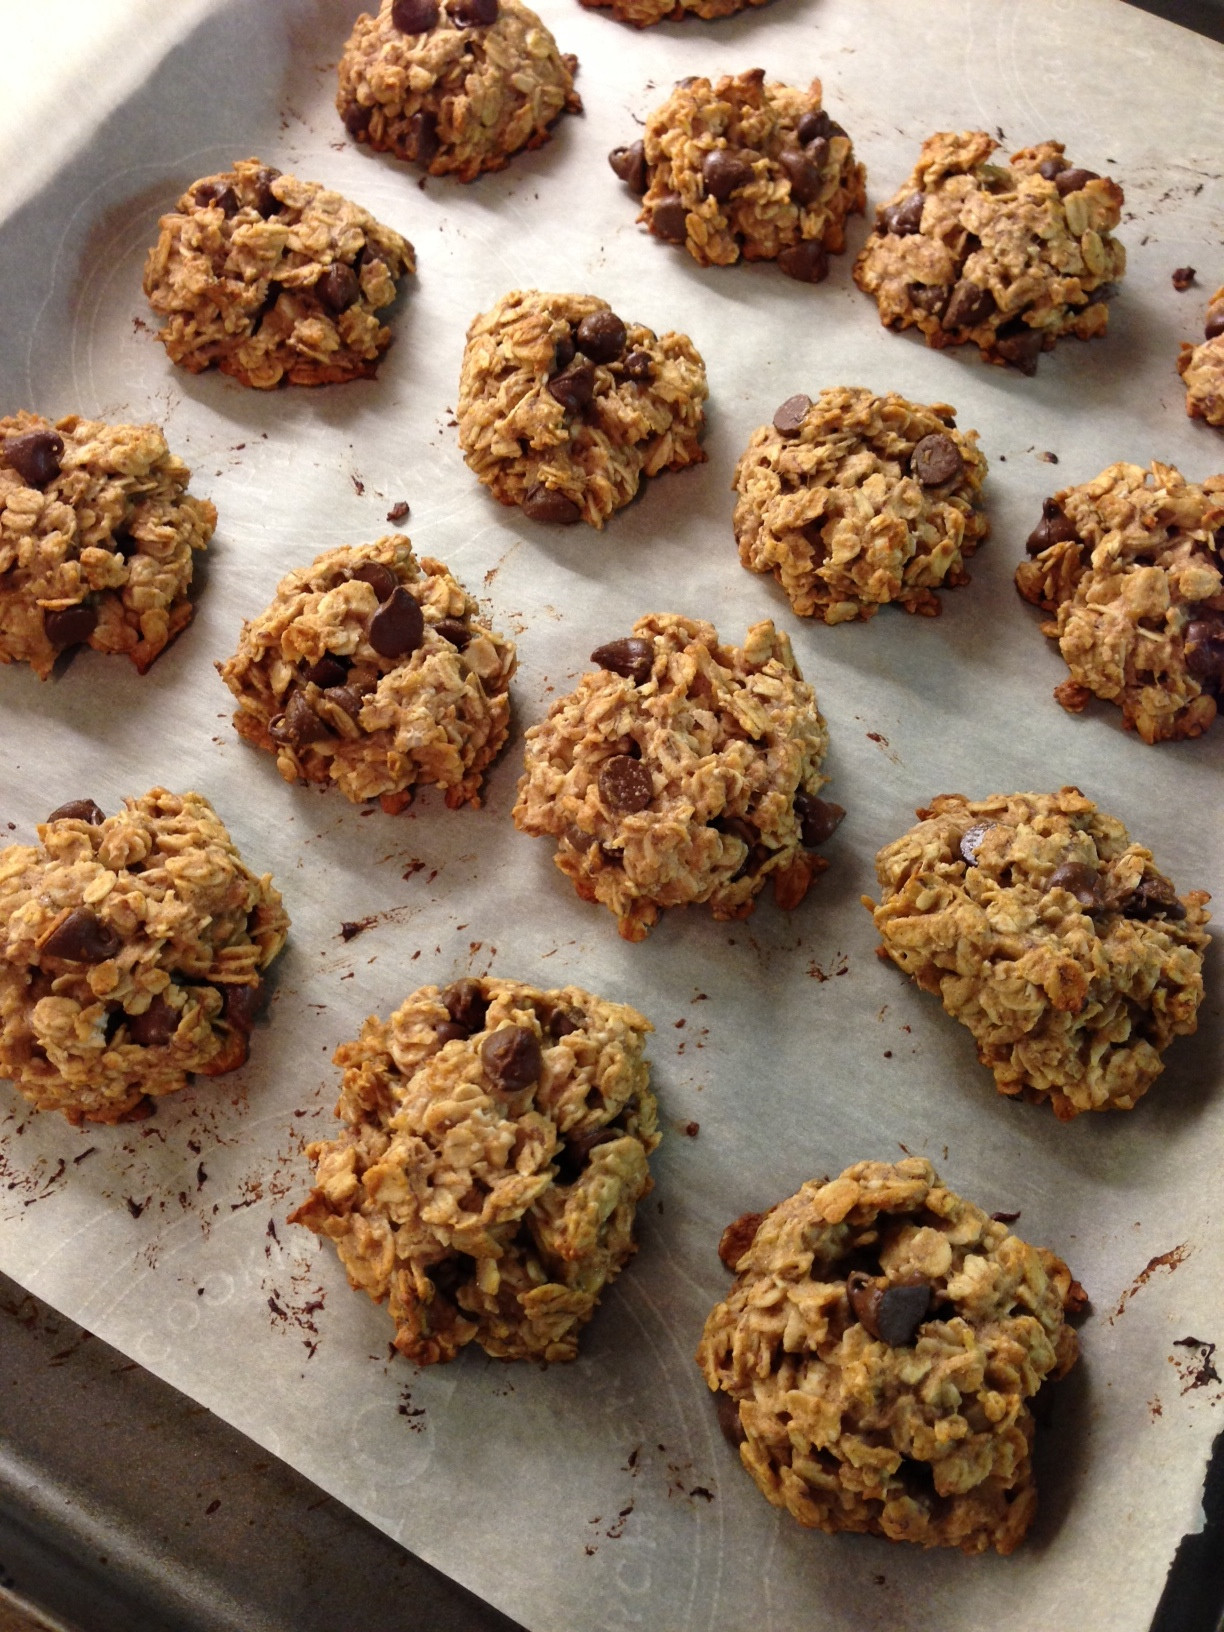 Oat Chocolate Chip Cookies Healthy  Healthy Oatmeal Chocolate Chip Cookies Lauren Follett